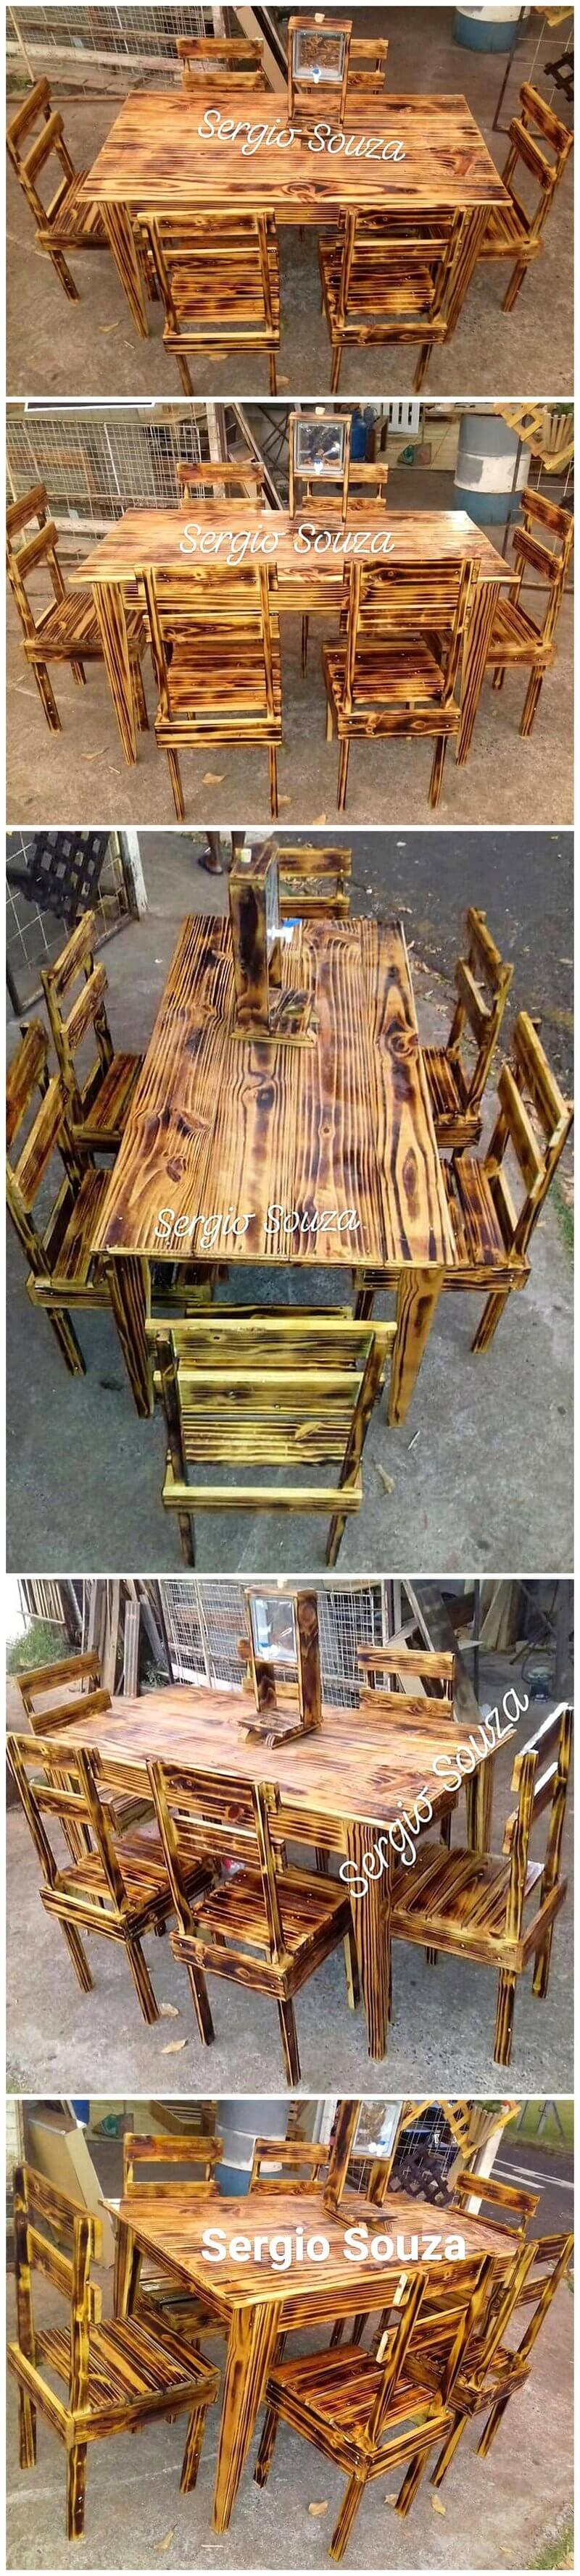 Original DIY Ideas for Wooden Pallets Recycling | Page 2 ...